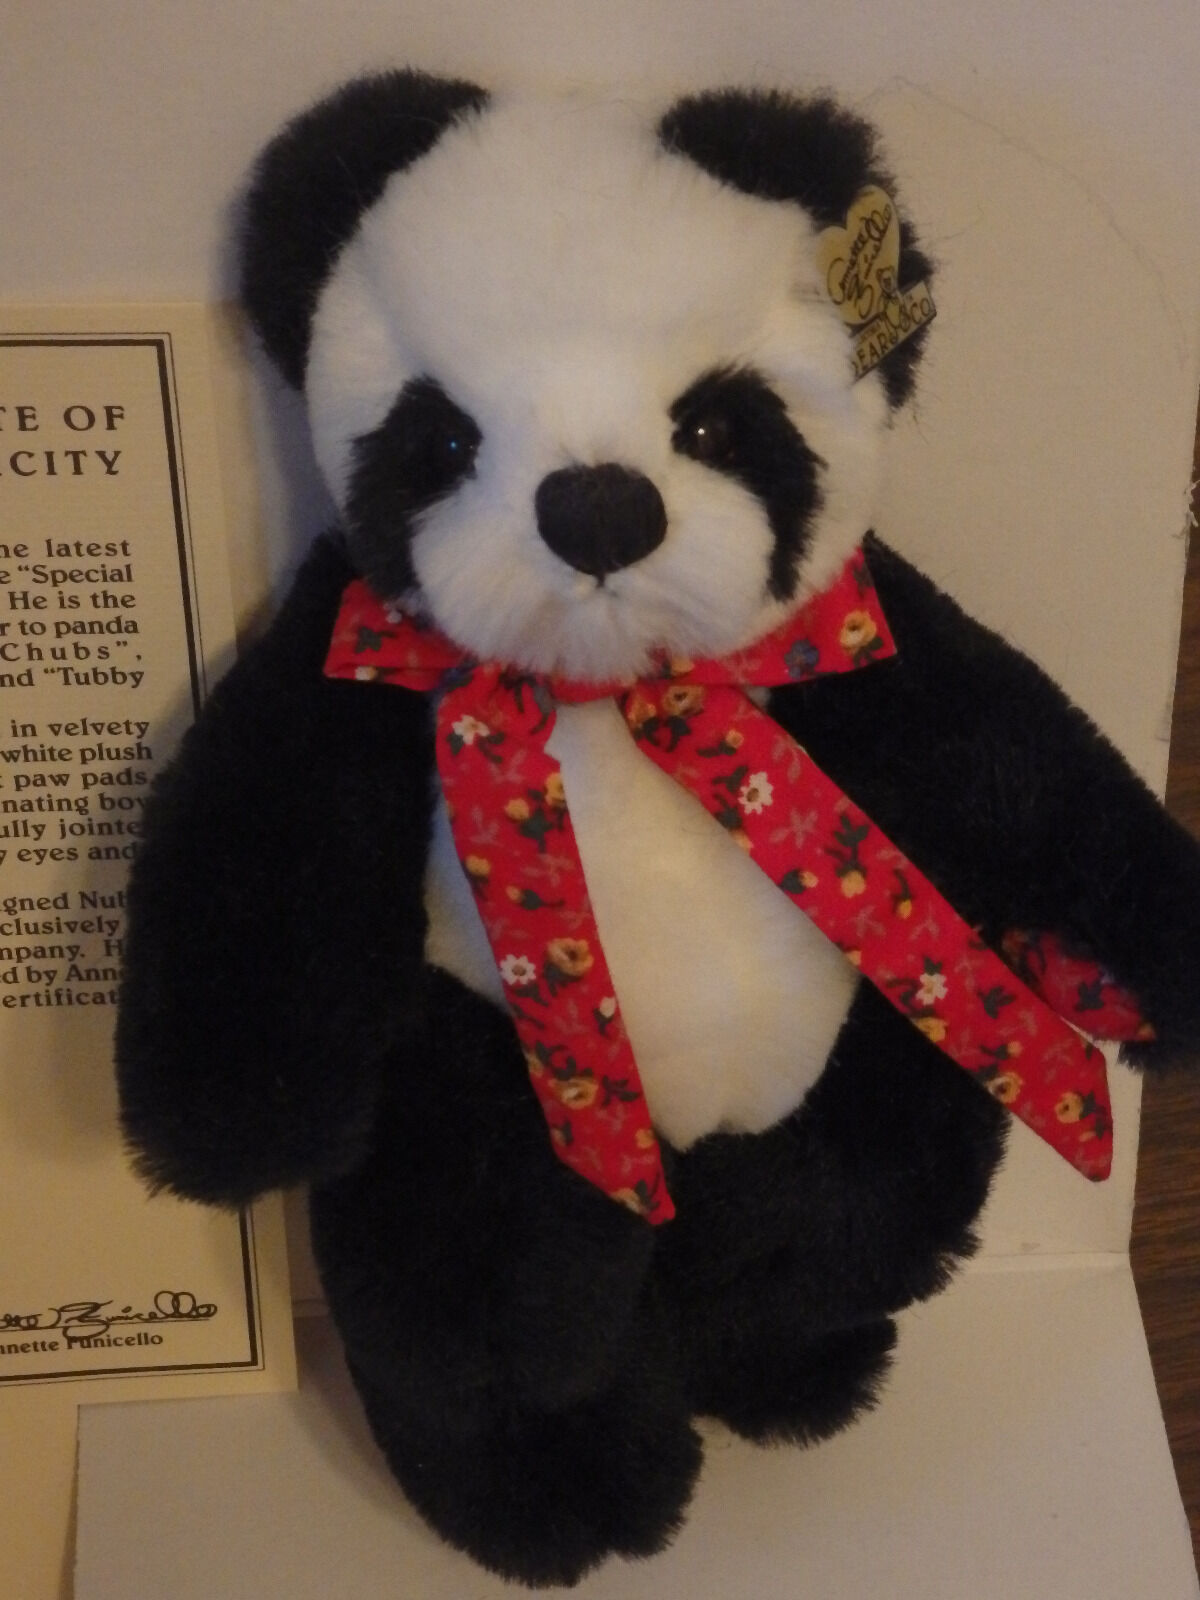 Annette Funicello Plush Panda Bear Nubby Special Collection  6082 of 7500 NIB